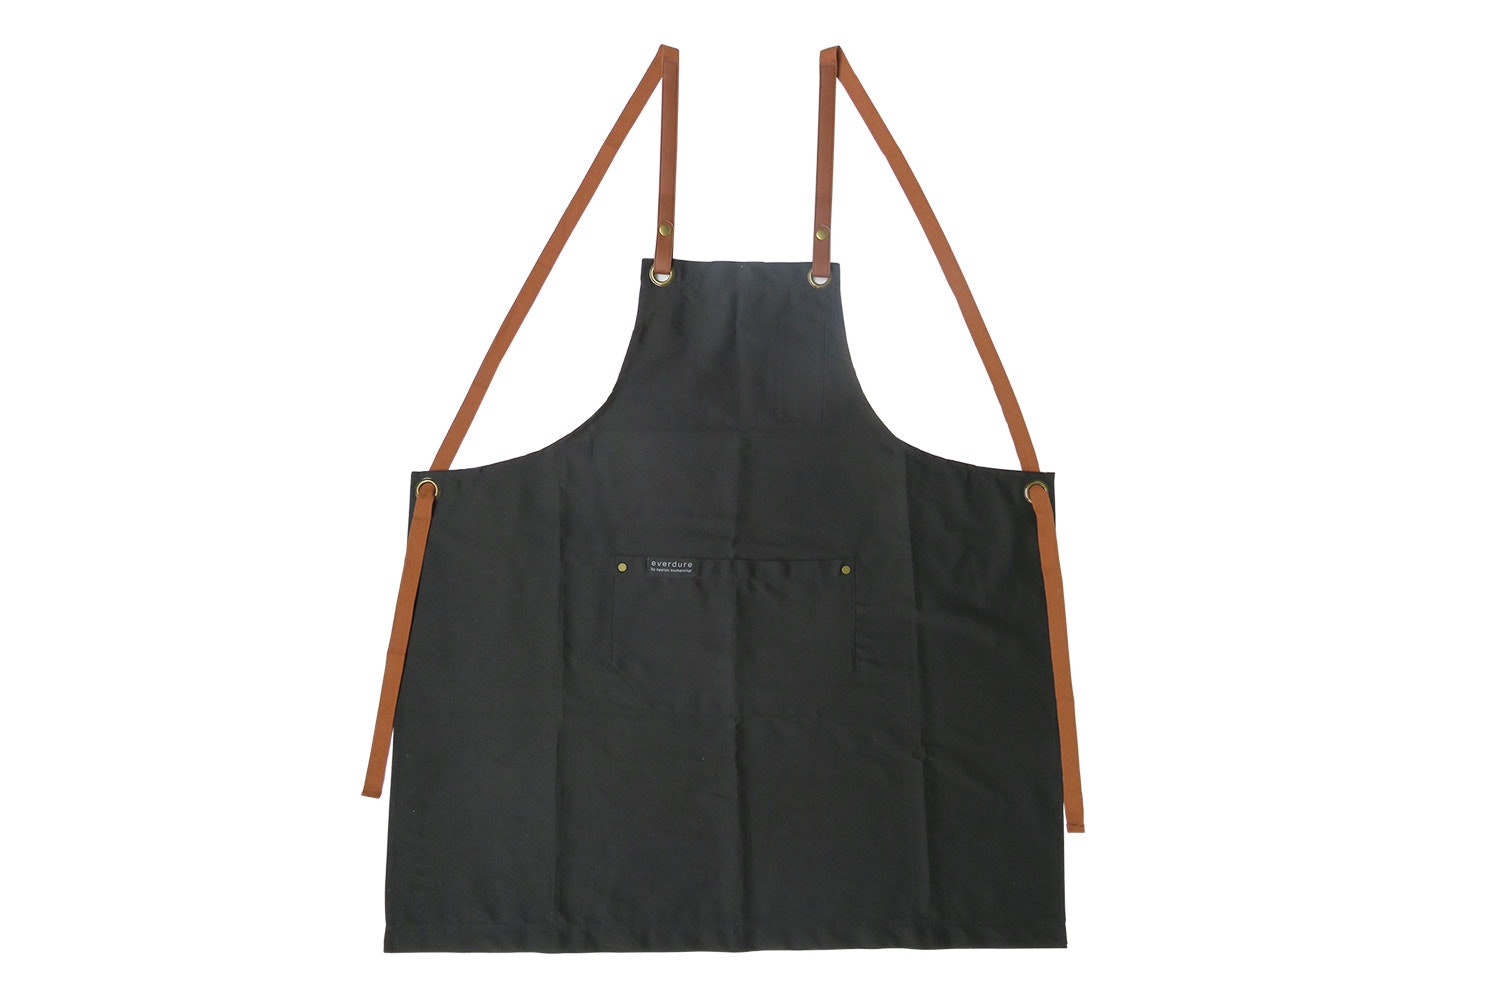 Everdure Barbeque Apron by Heston Blumenthal